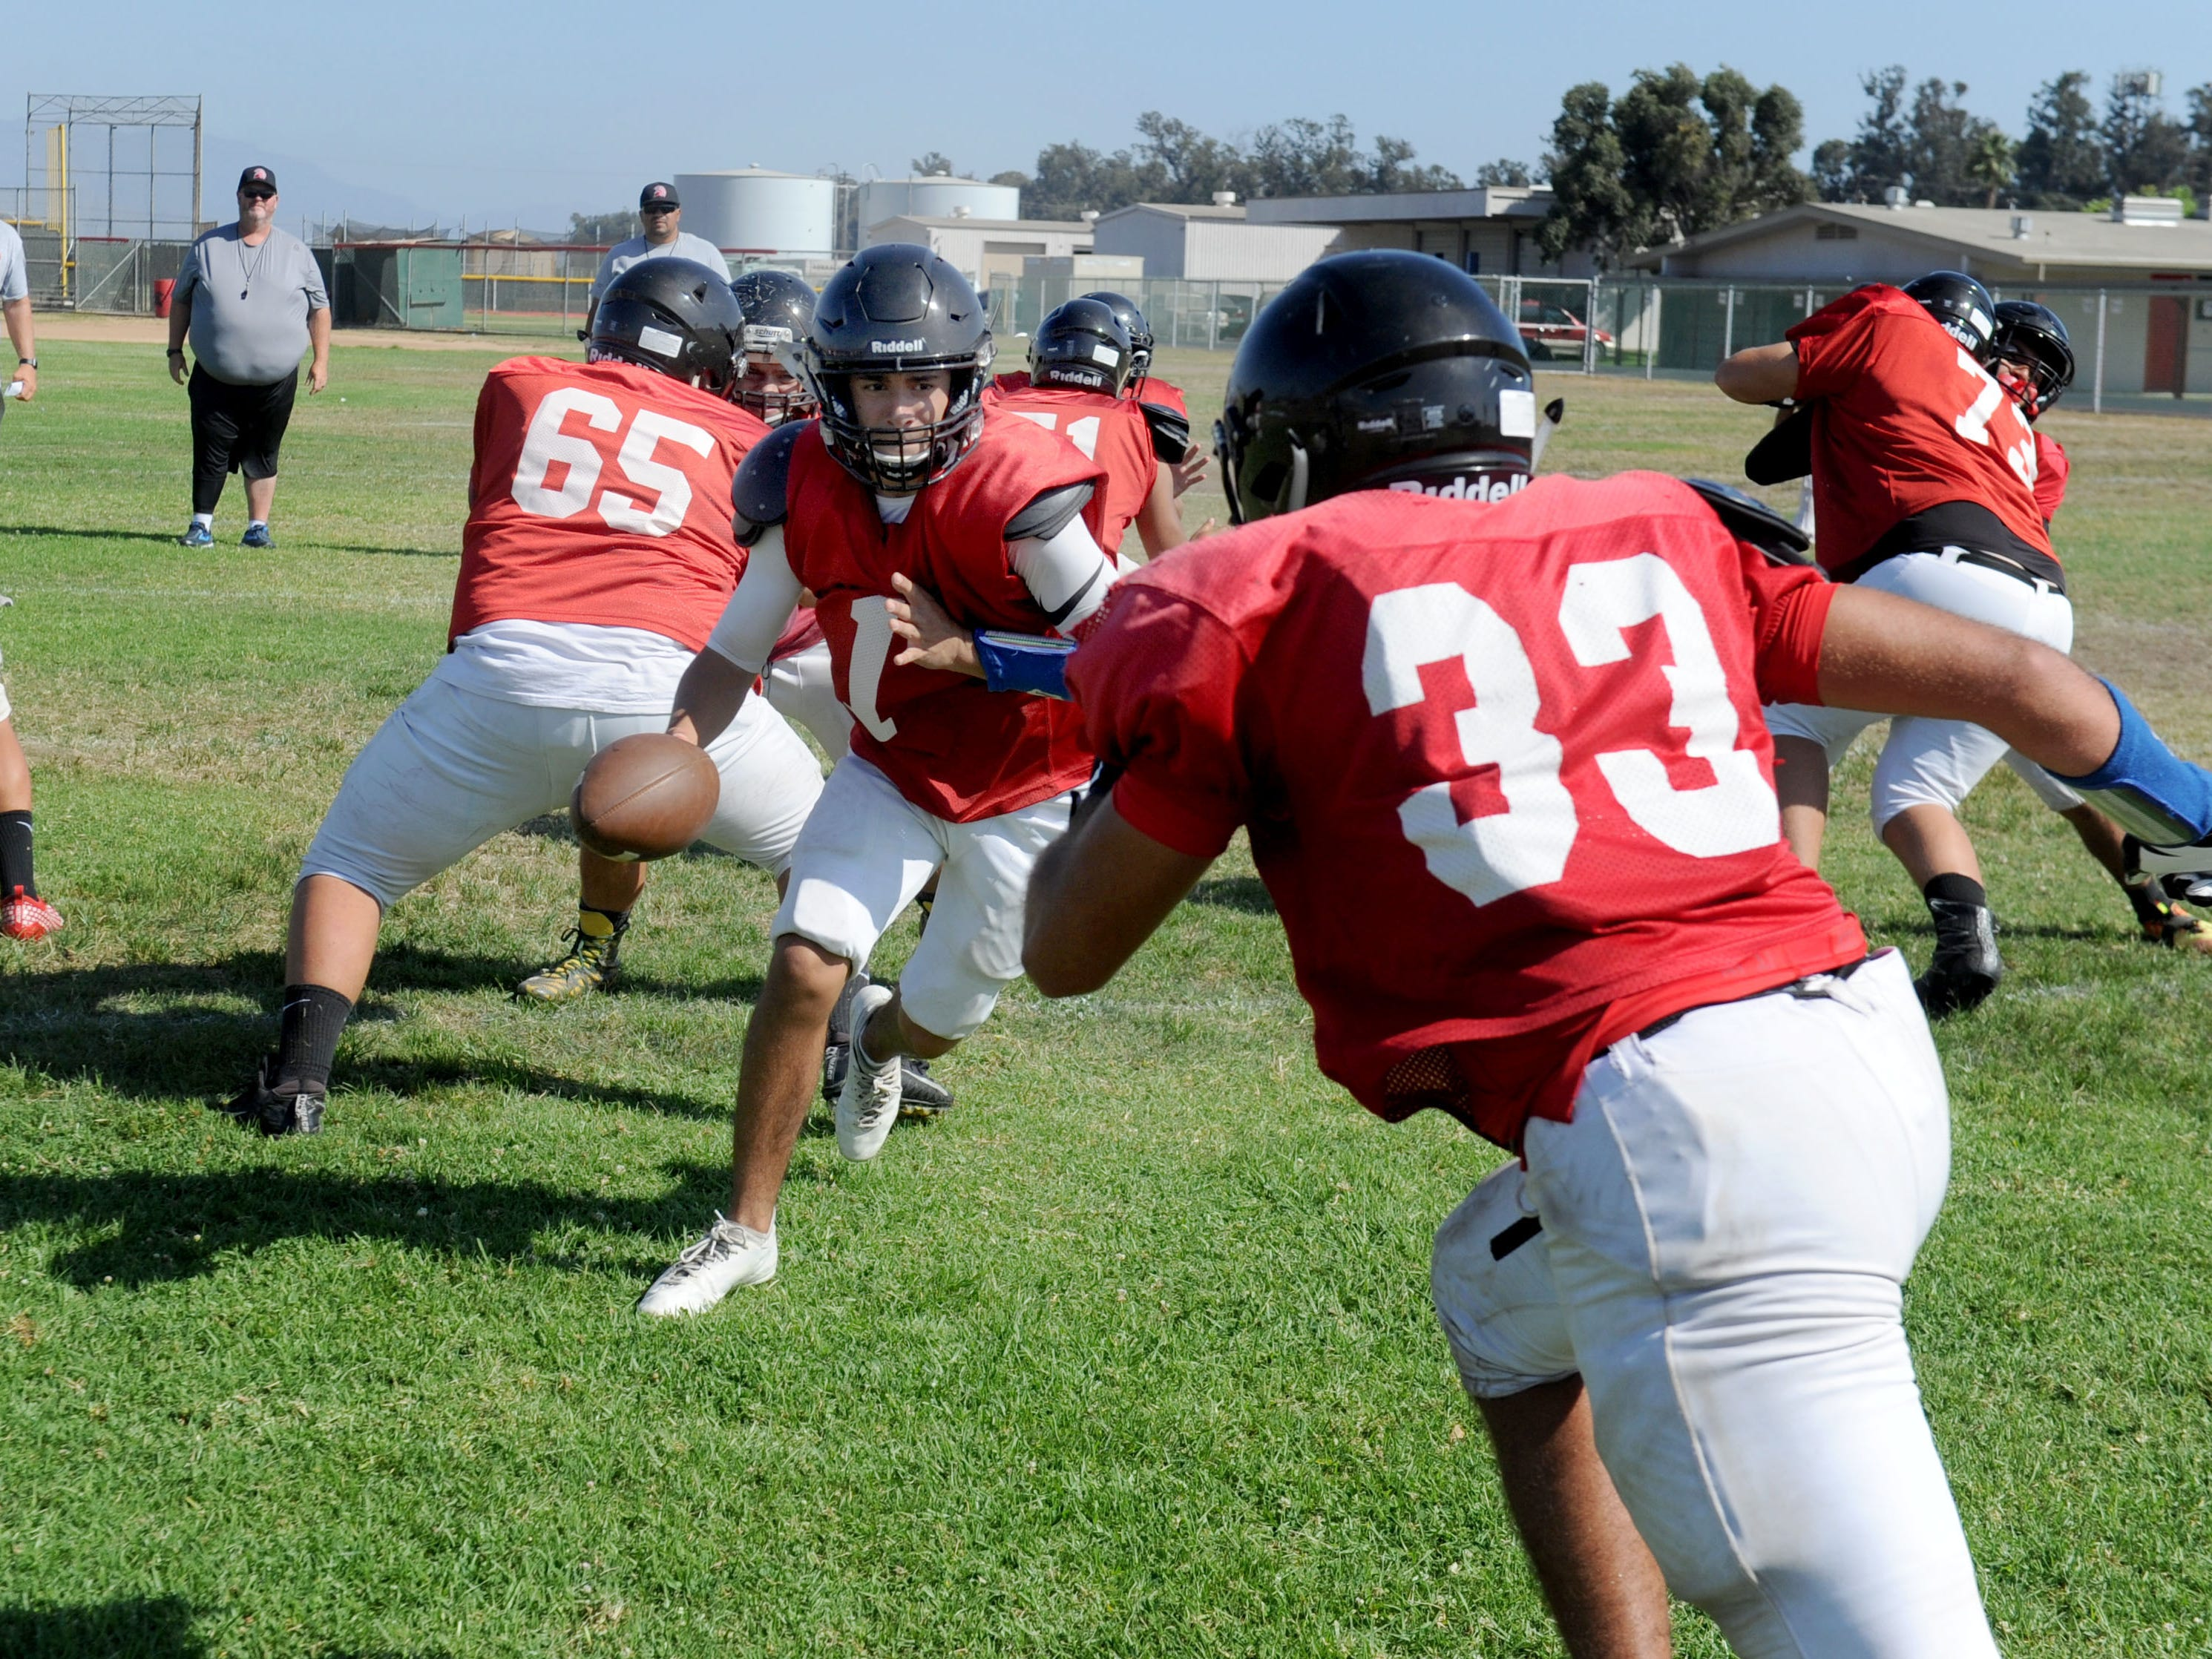 Quarterback Anthony Johnston gets ready to hand the ball to Moses Marsico during Rio Mesa High's practice on Wednesday. The Spartans start the 2018 season at Camarillo High on Friday night.